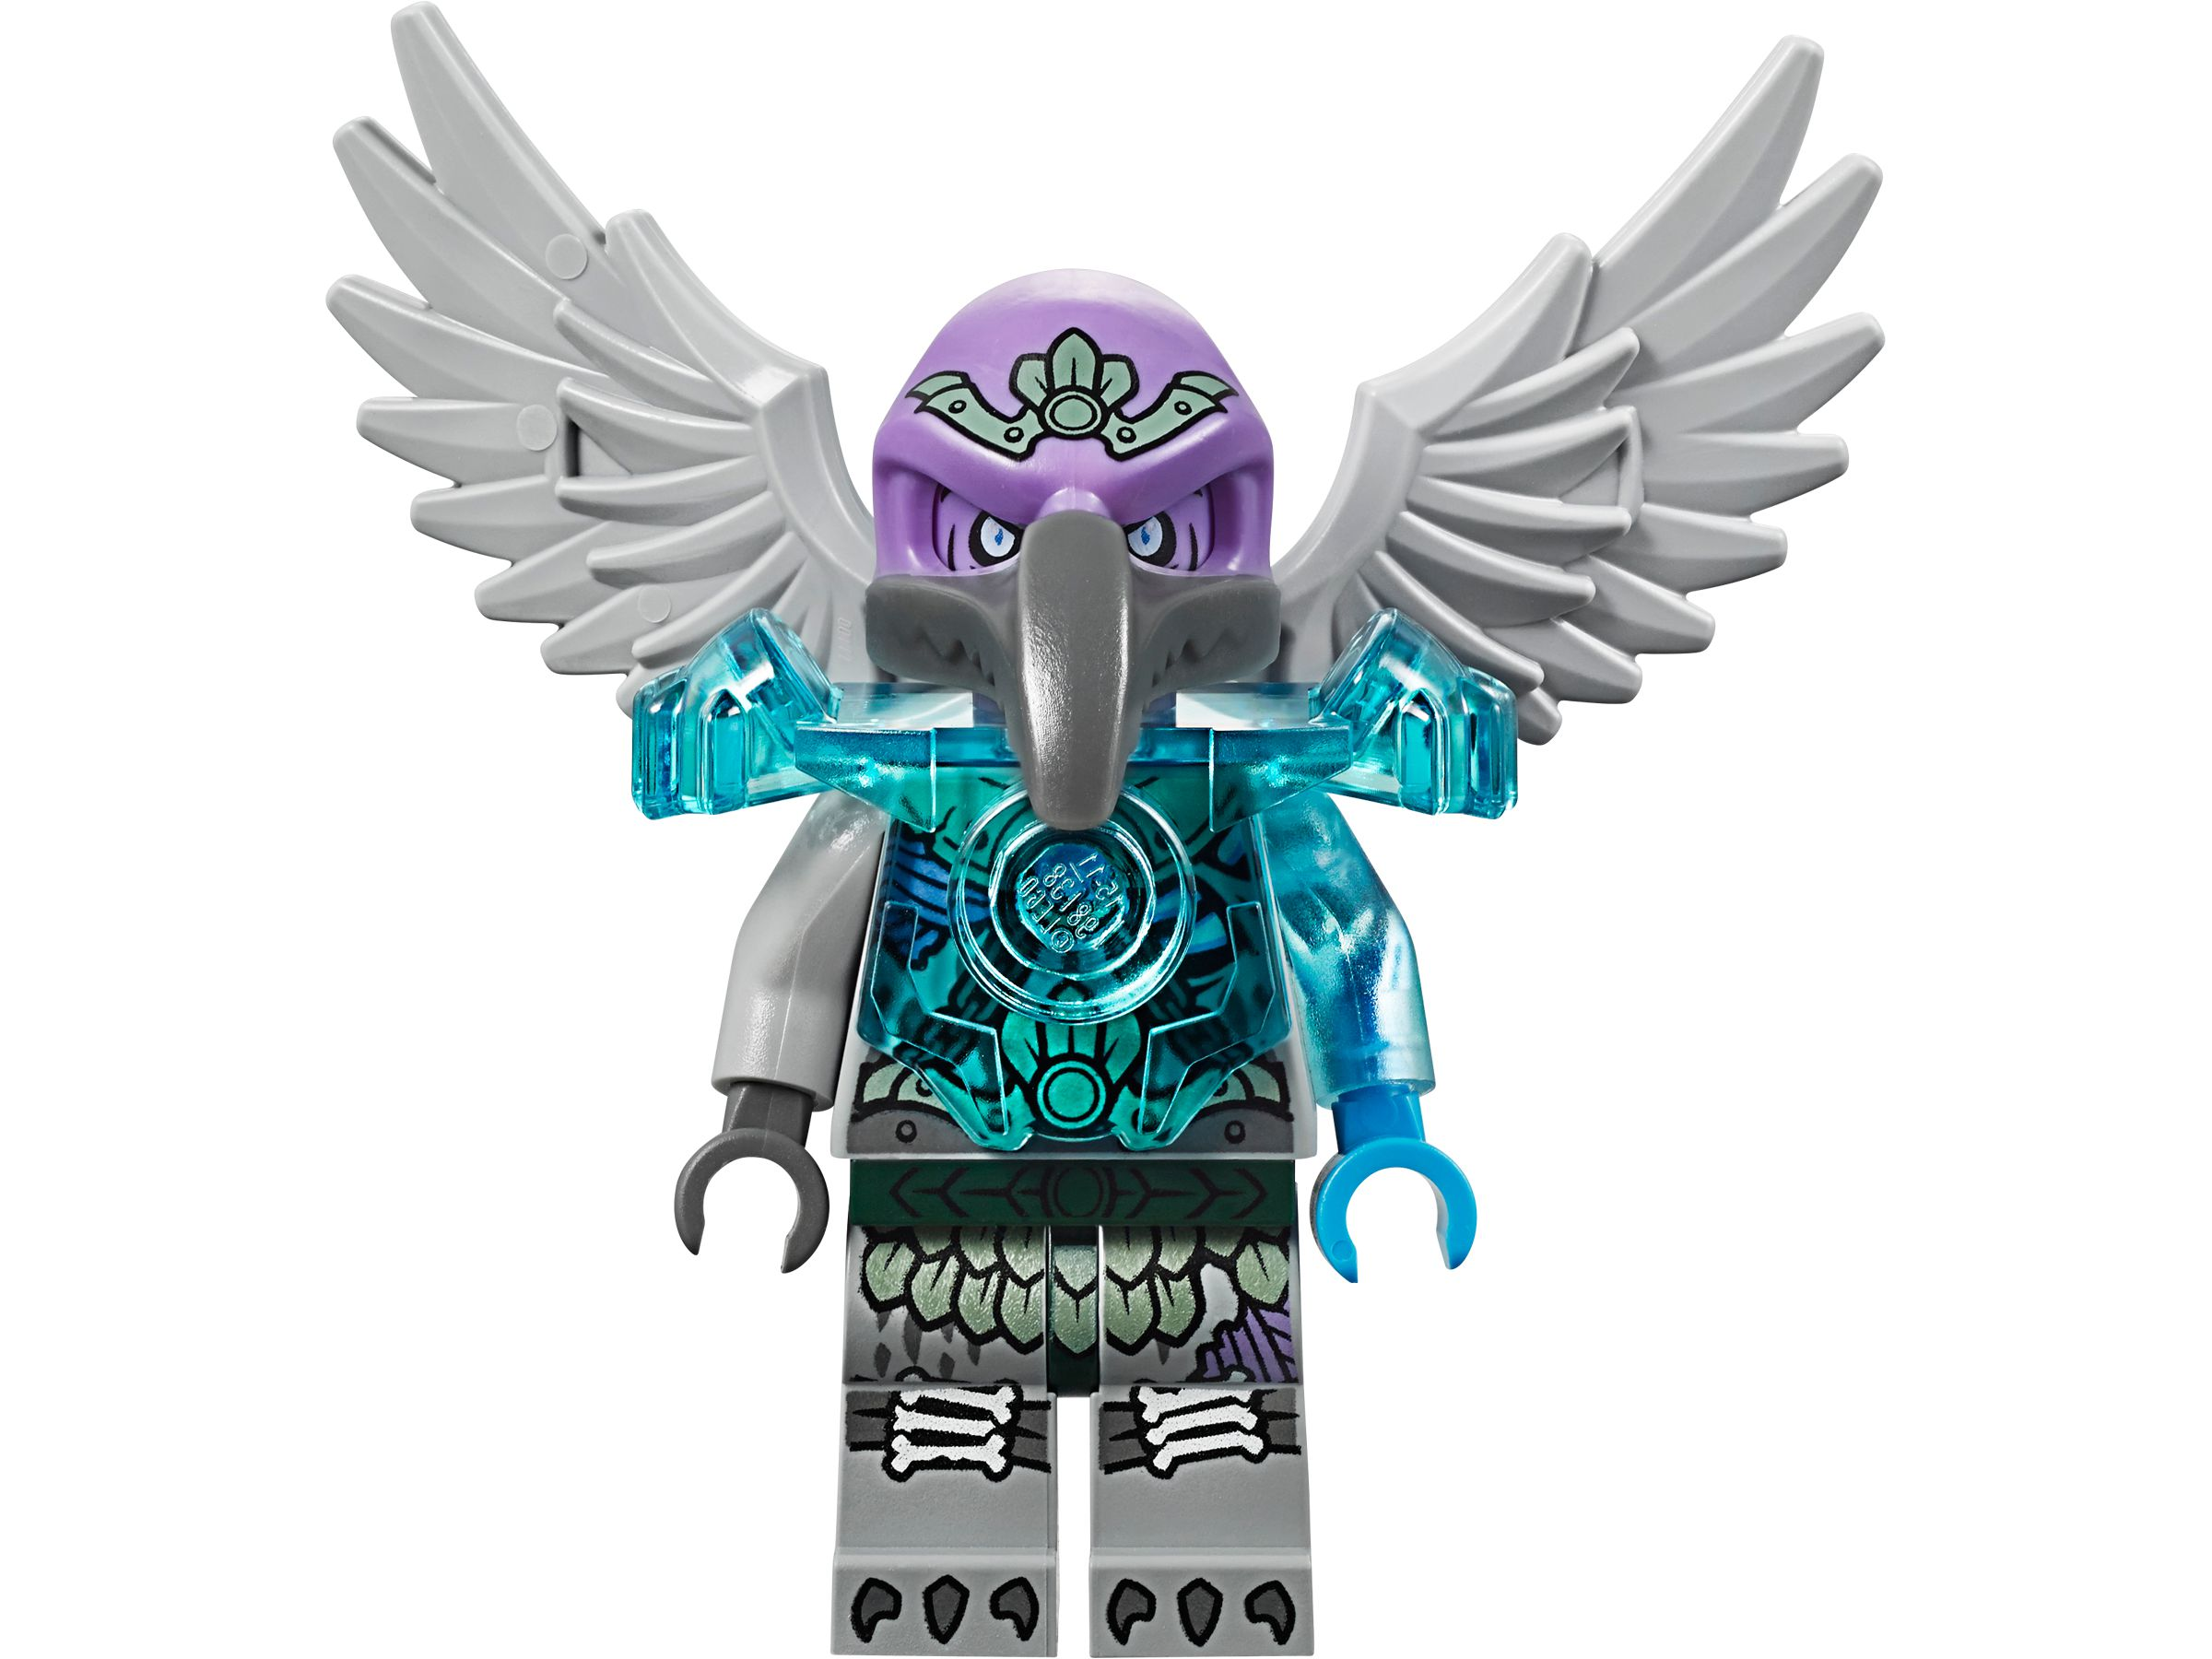 LEGO Legends Of Chima 70141 Vardys Eis-Gleiter LEGO_70141_alt5.jpg